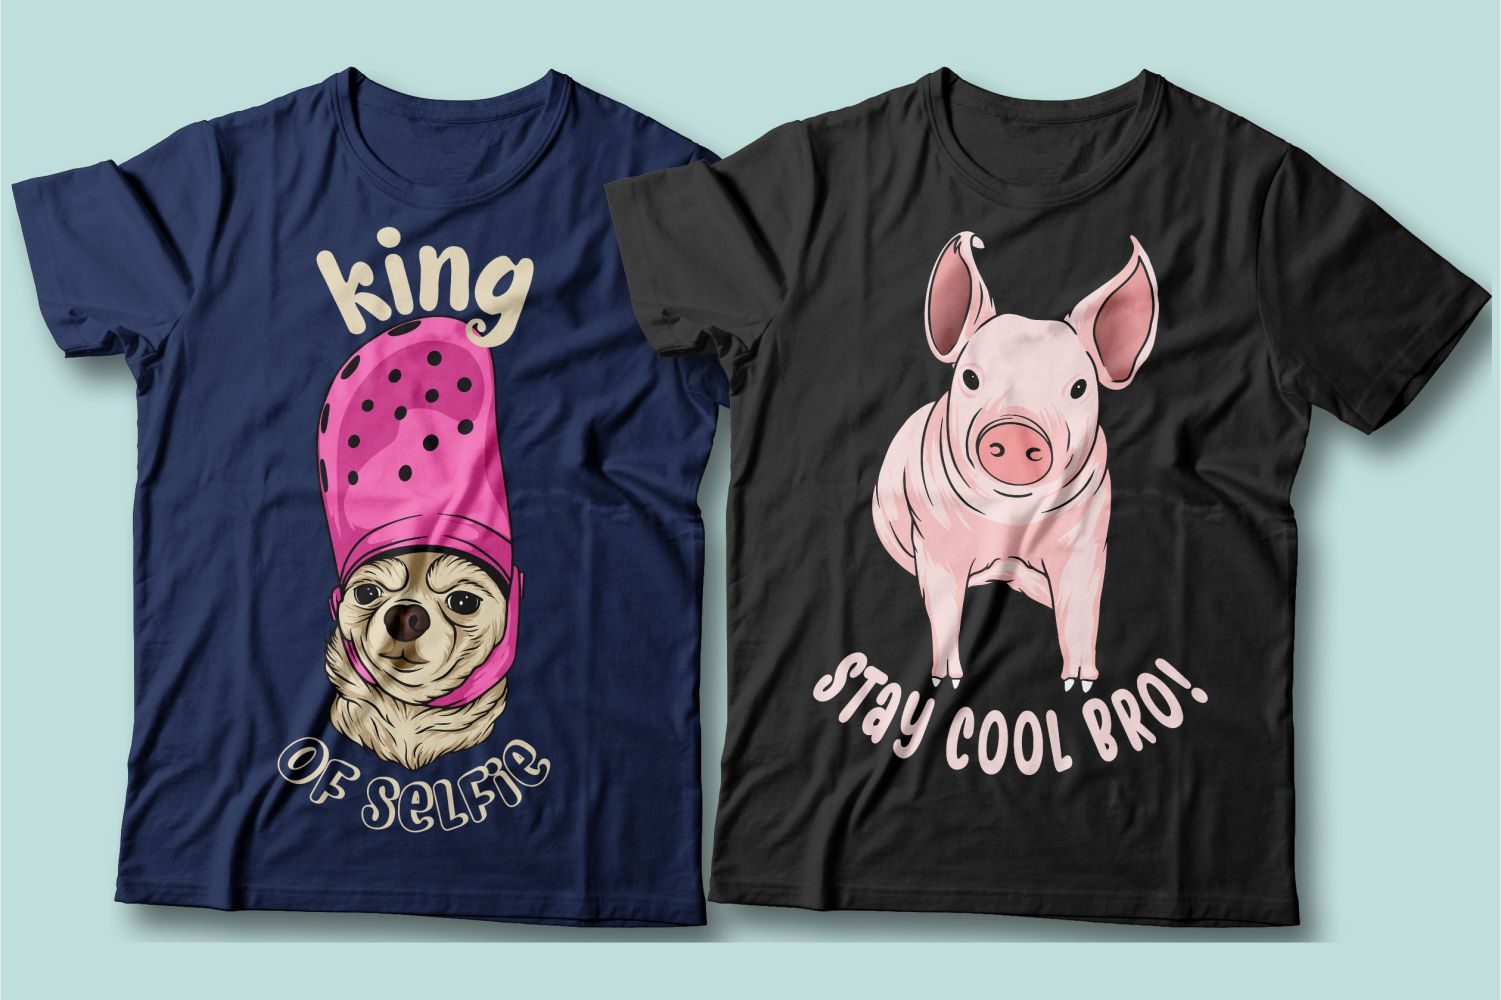 Remain king in any situation. This cute little dog and confident pig is a prime example.